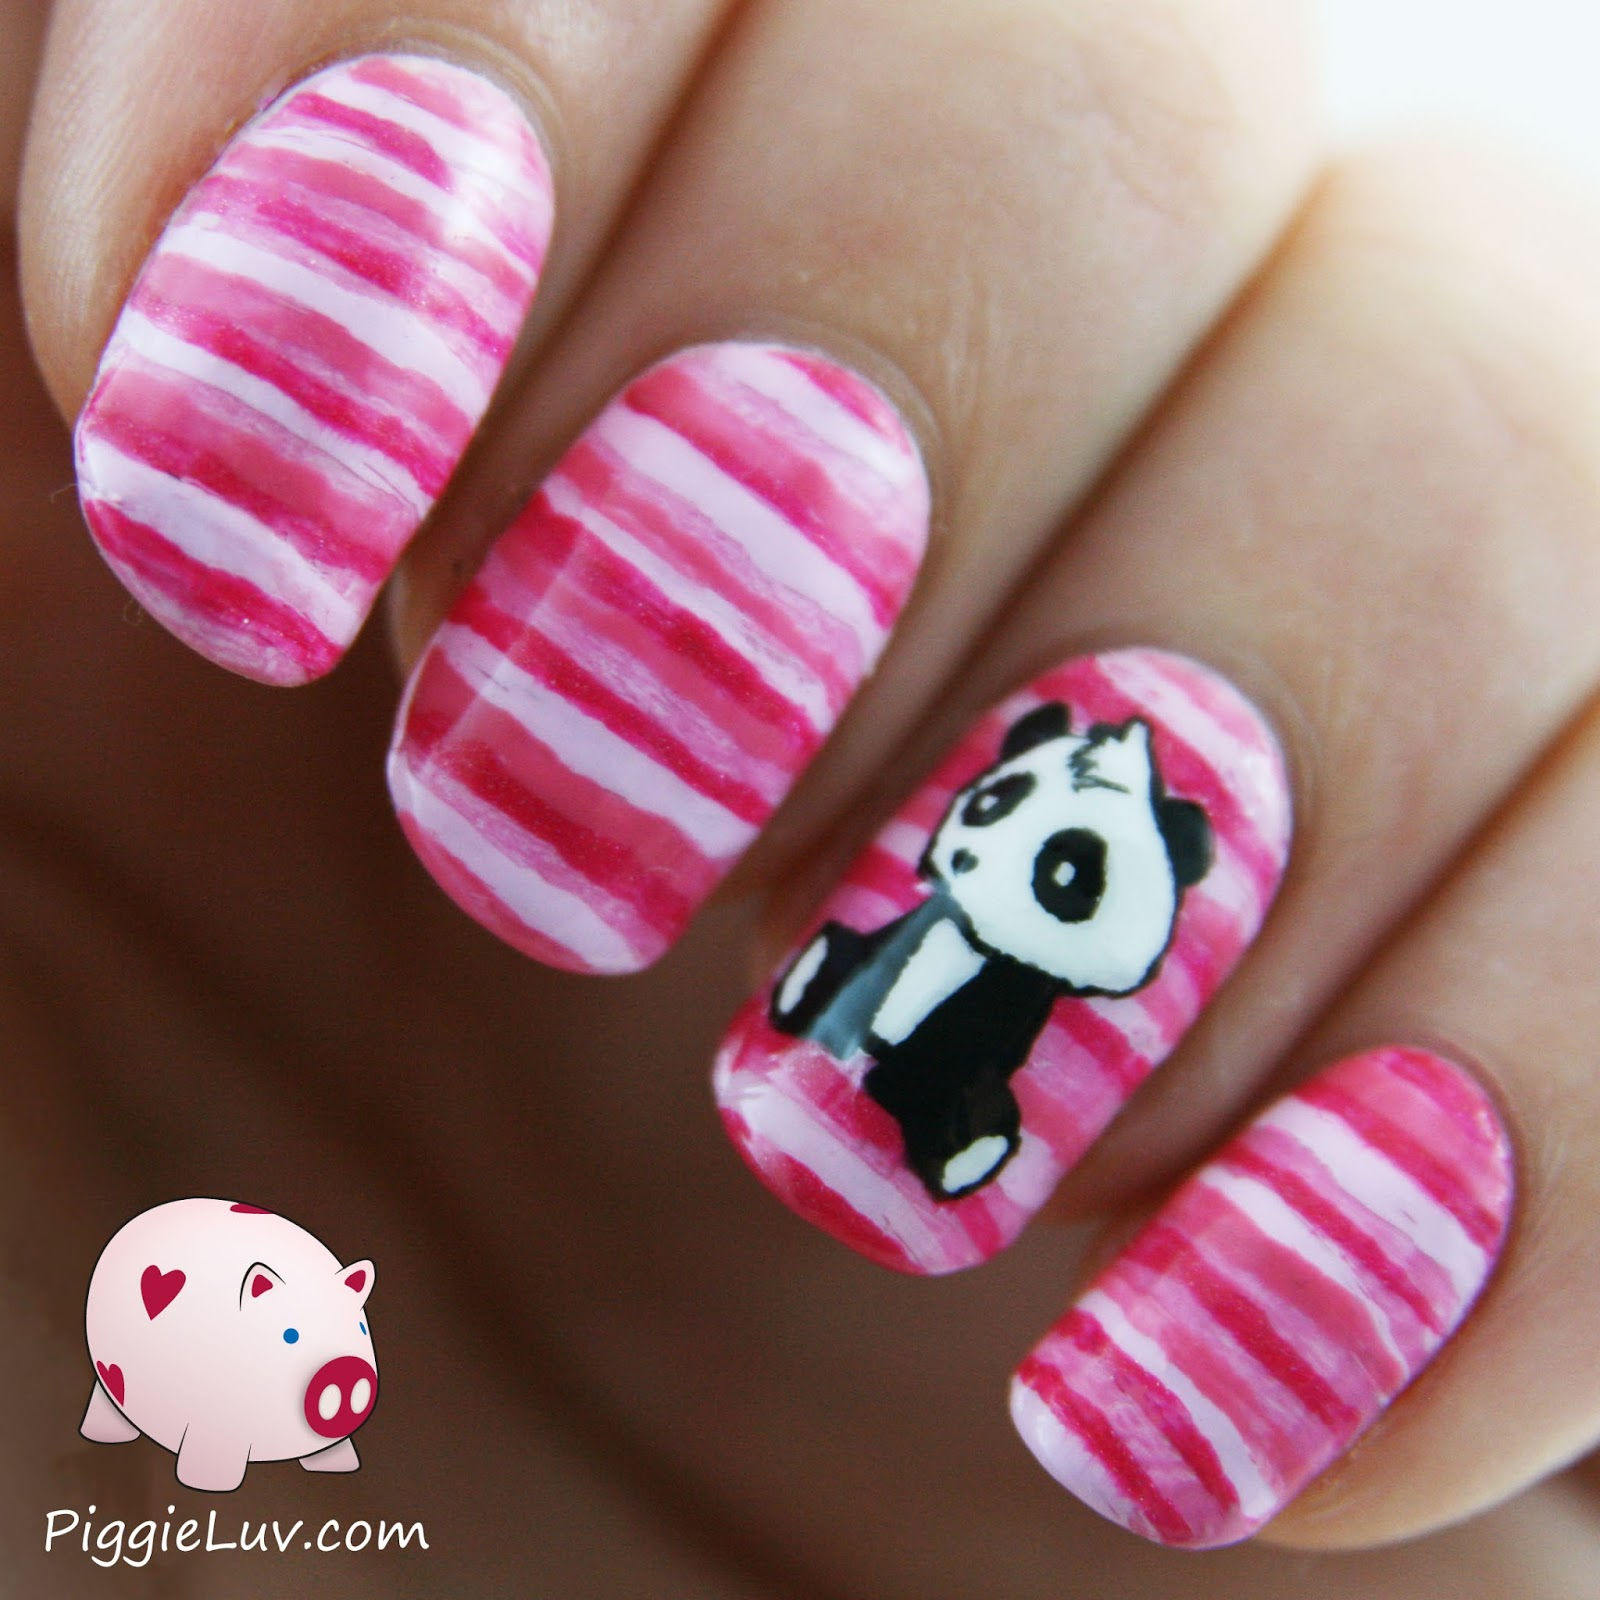 Piggieluv sad panda nail art i have a cute little hand painted panda guy for you today the background was a fail turned into something else and then the panda just fit perfectly prinsesfo Images